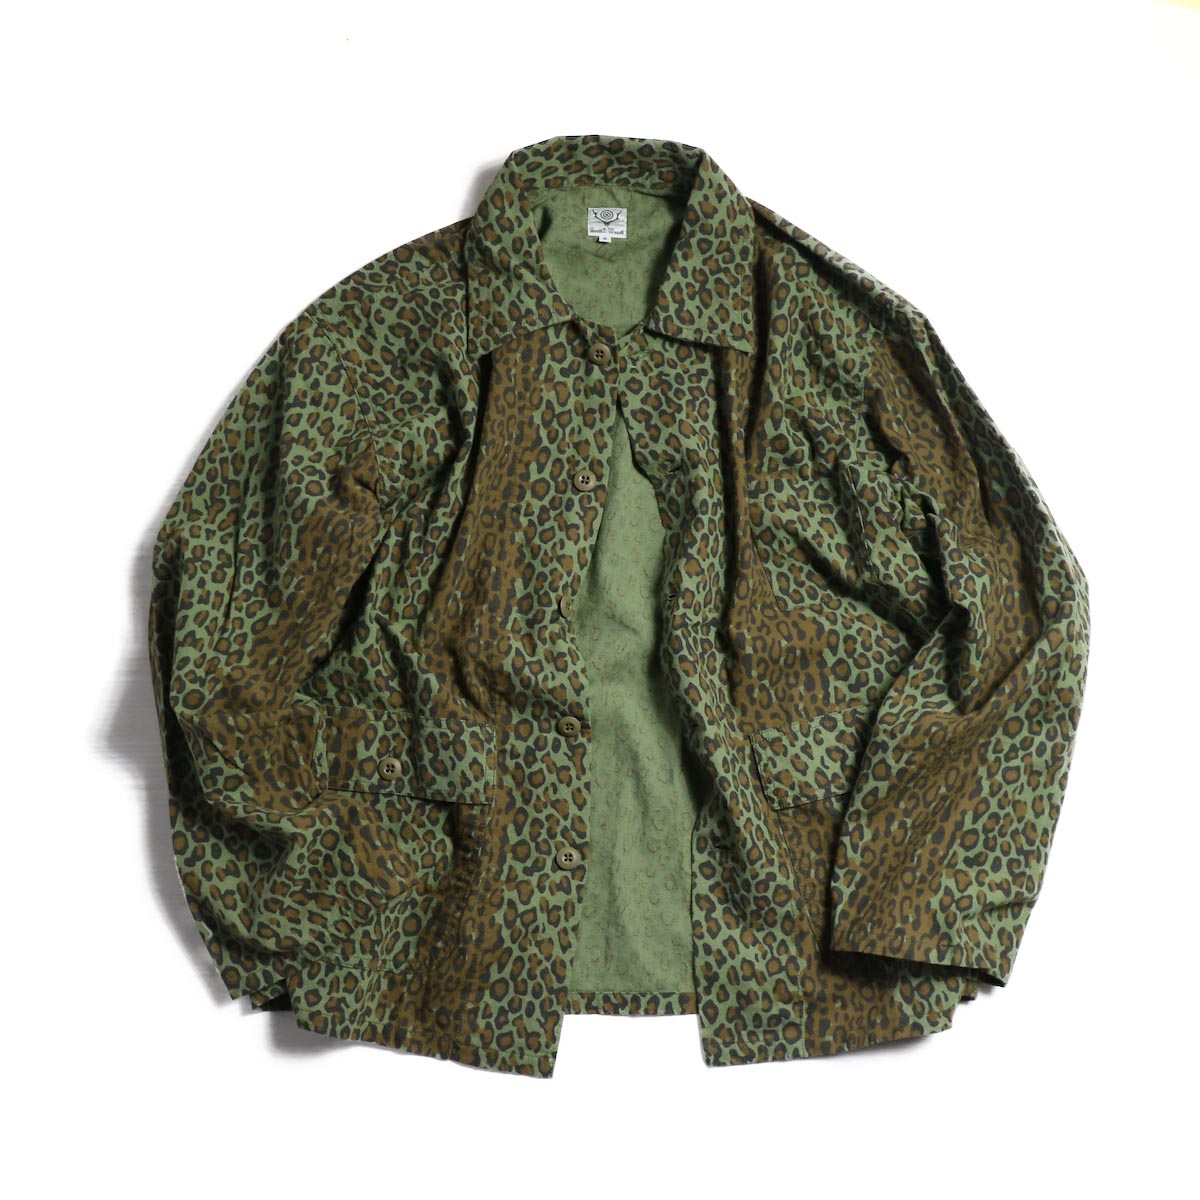 SOUTH2 WEST8 / Hunting Shirt Printed Flannel/Camouflage -Leopard